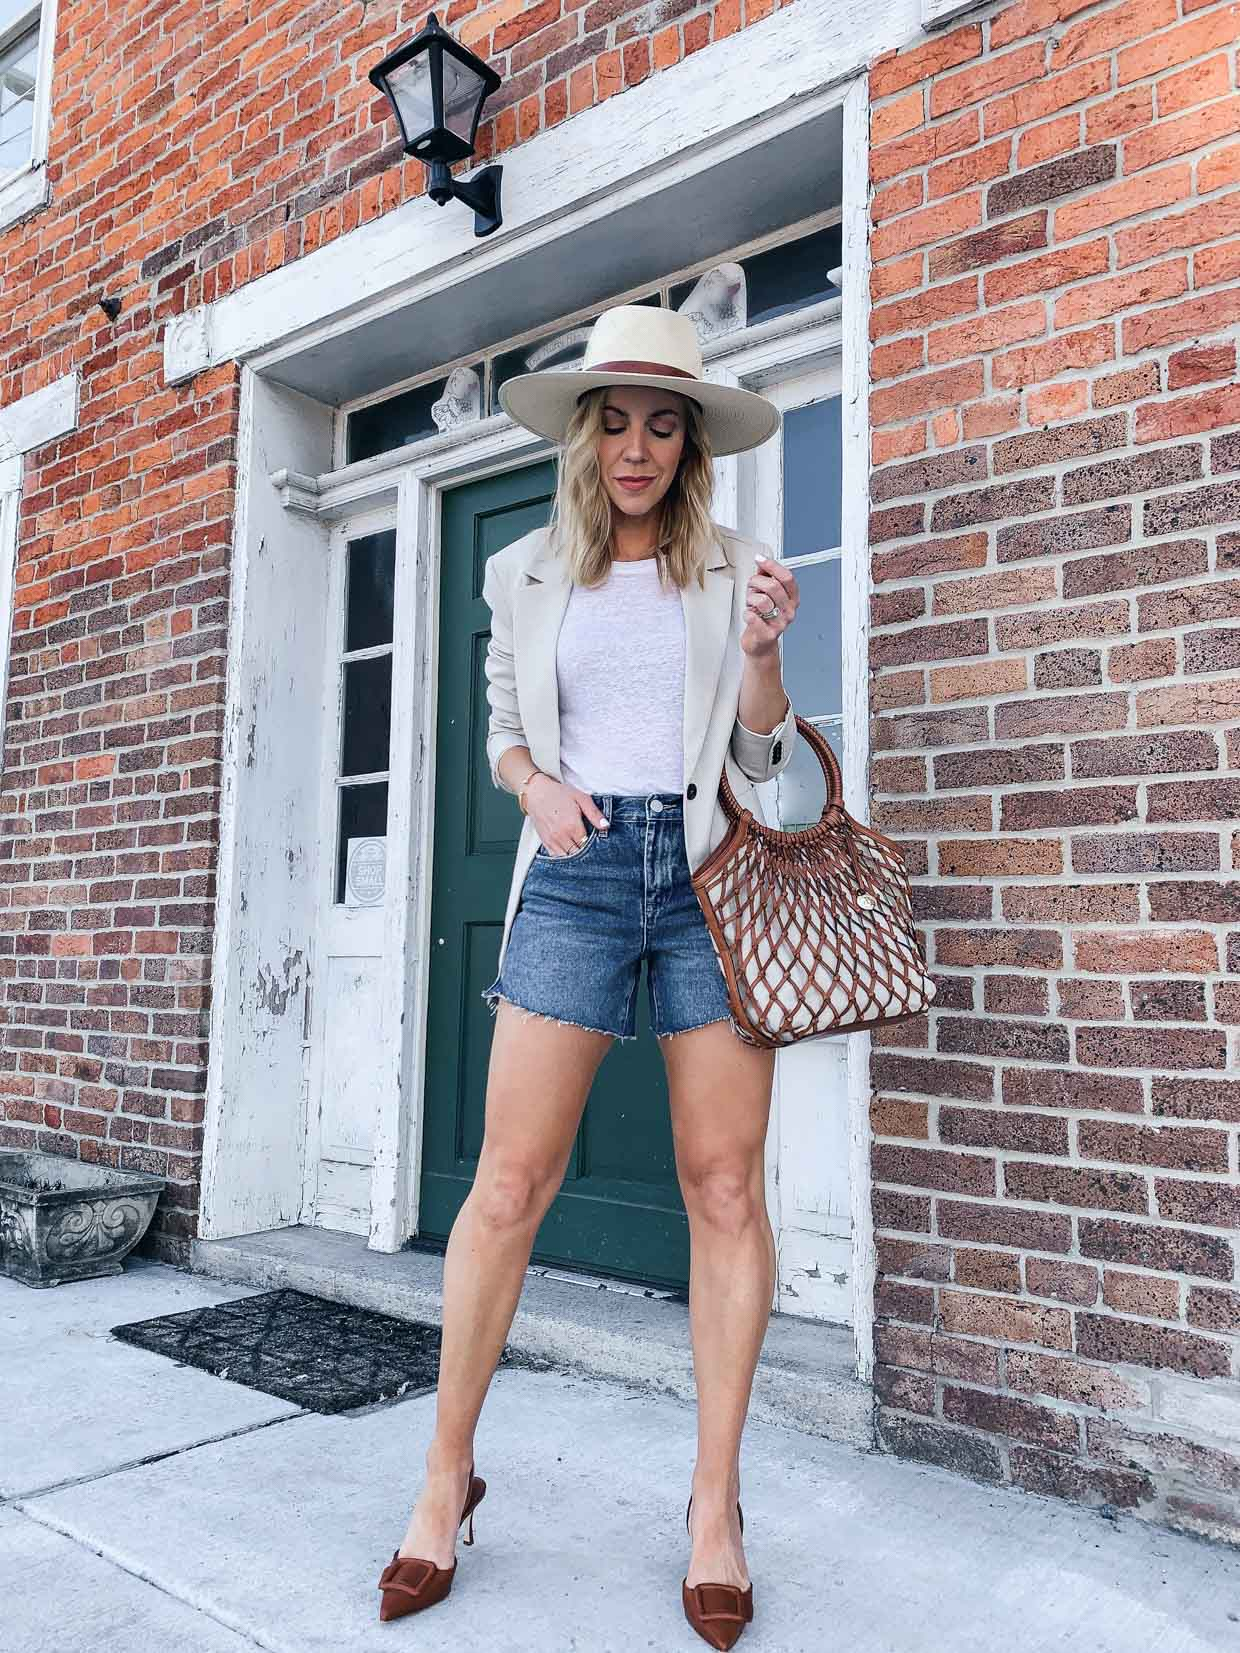 Meagan Brandon fashion blogger of Meagan's Moda wears H&M beige blazer for summer with white tee and denim shorts